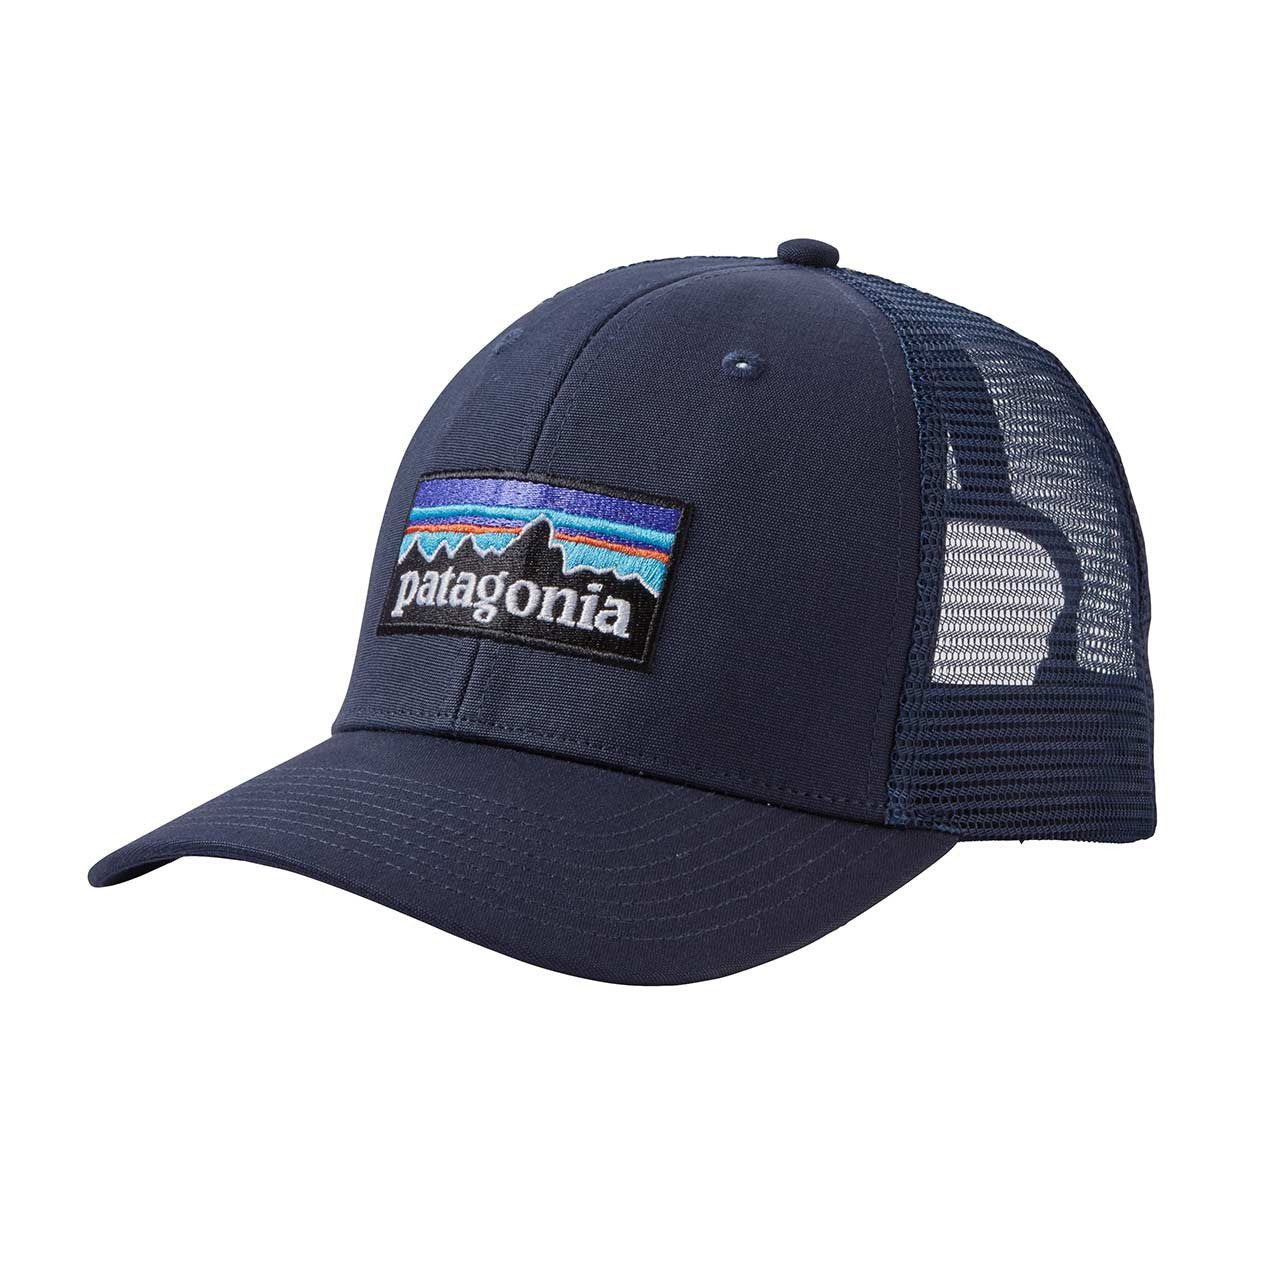 8fccdf55d4a Patagonia P-6 Logo Trucker Hat Black ALL